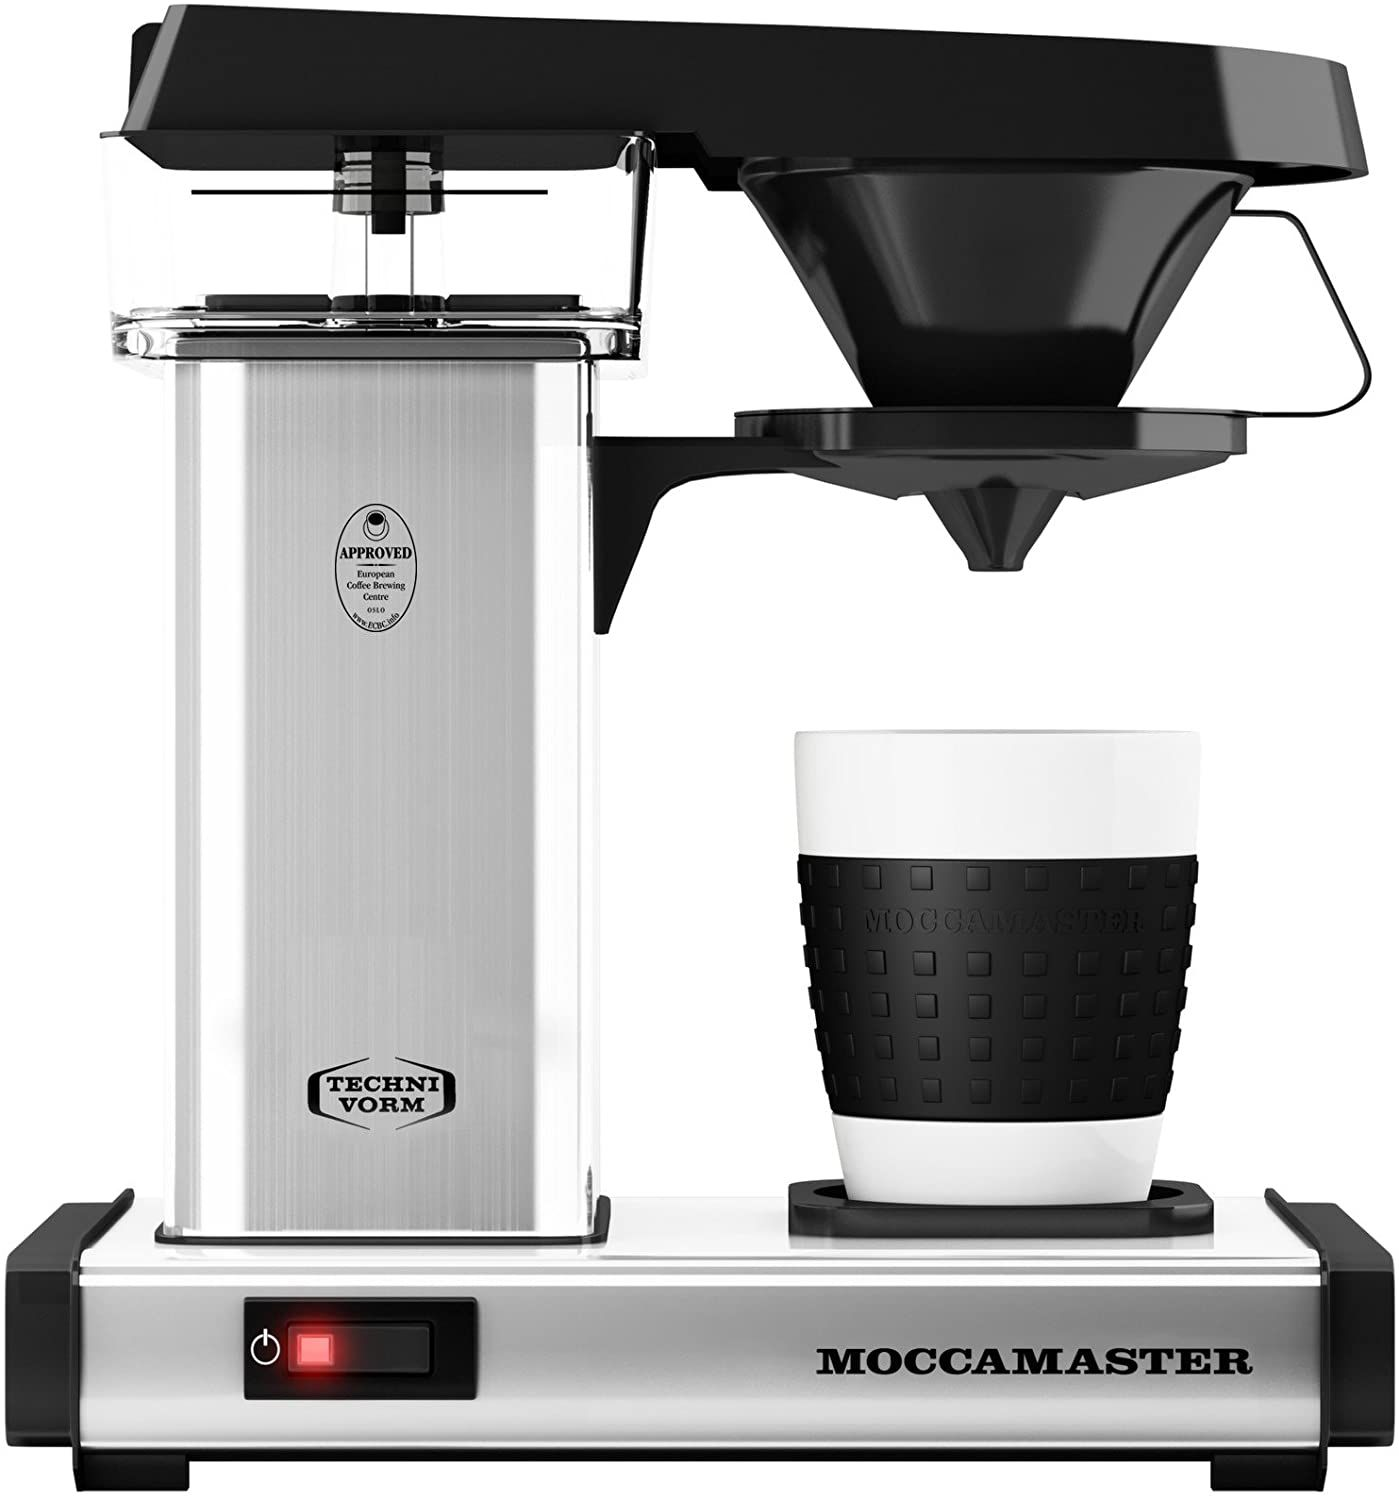 4 Best Single Serve Coffee Maker With No Pods In 2020 Percolator Coffee Single Serve Coffee Makers Coffee Brewer